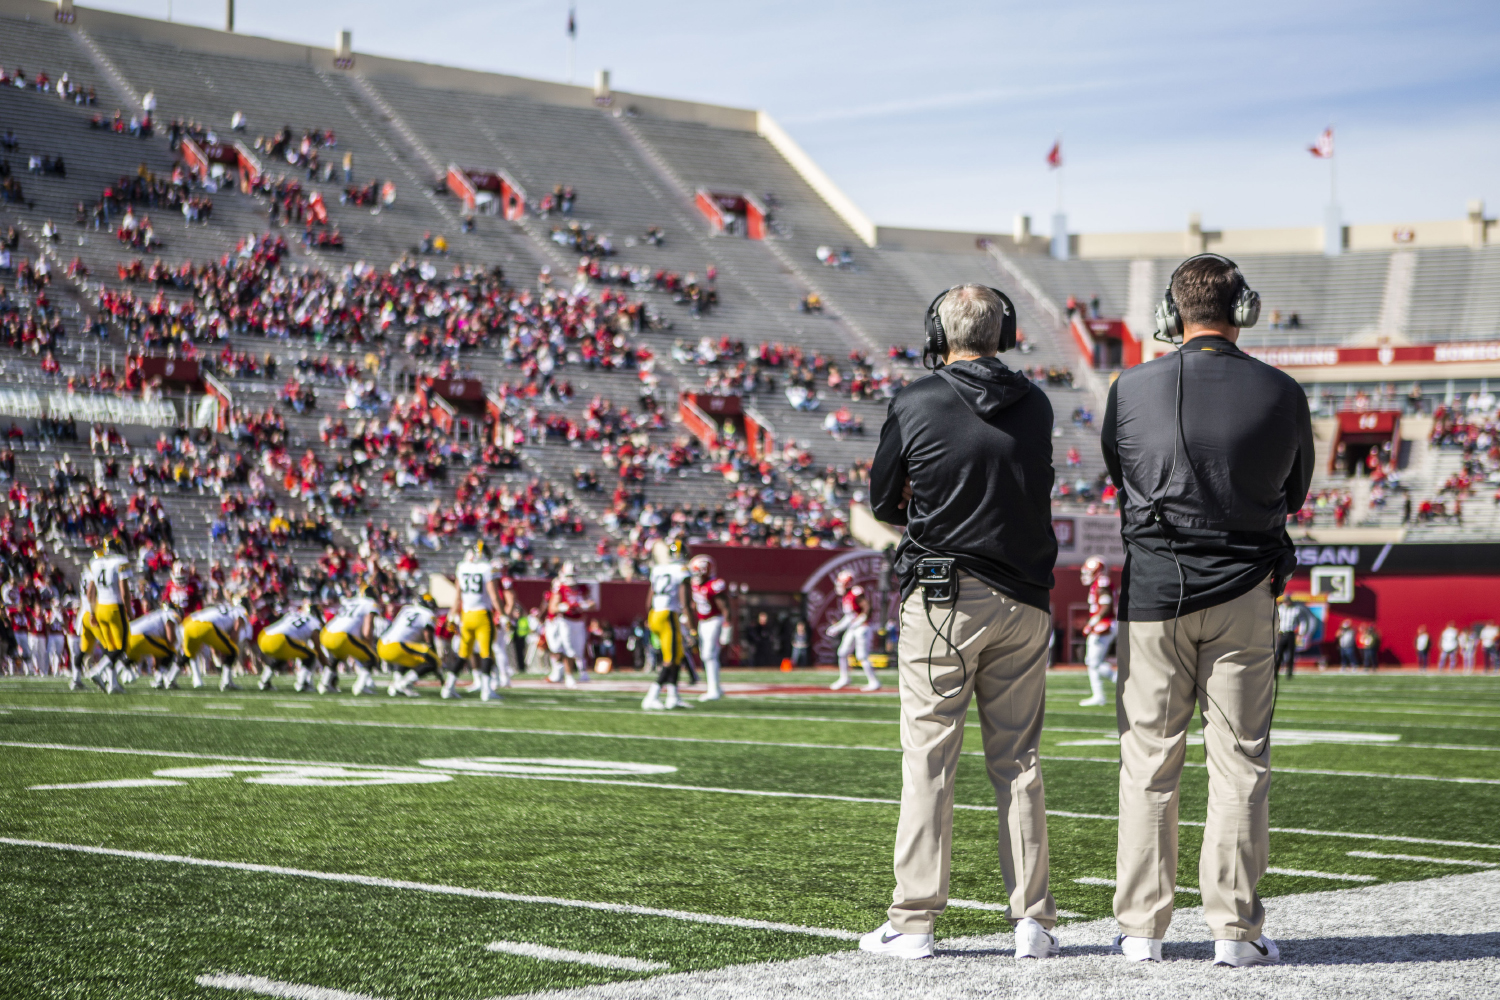 Iowa+head+coach+Kirk+Ferentz+and+offensive+coordinator+Brian+Ferentz+watch+the+game+during+Iowa%27s+game+at+Indiana+at+Memorial+Stadium+in+Bloomington+on+Saturday%2C+October+13%2C+2018.+The+Hawkeyes+beat+the+Hoosiers+42-16.+